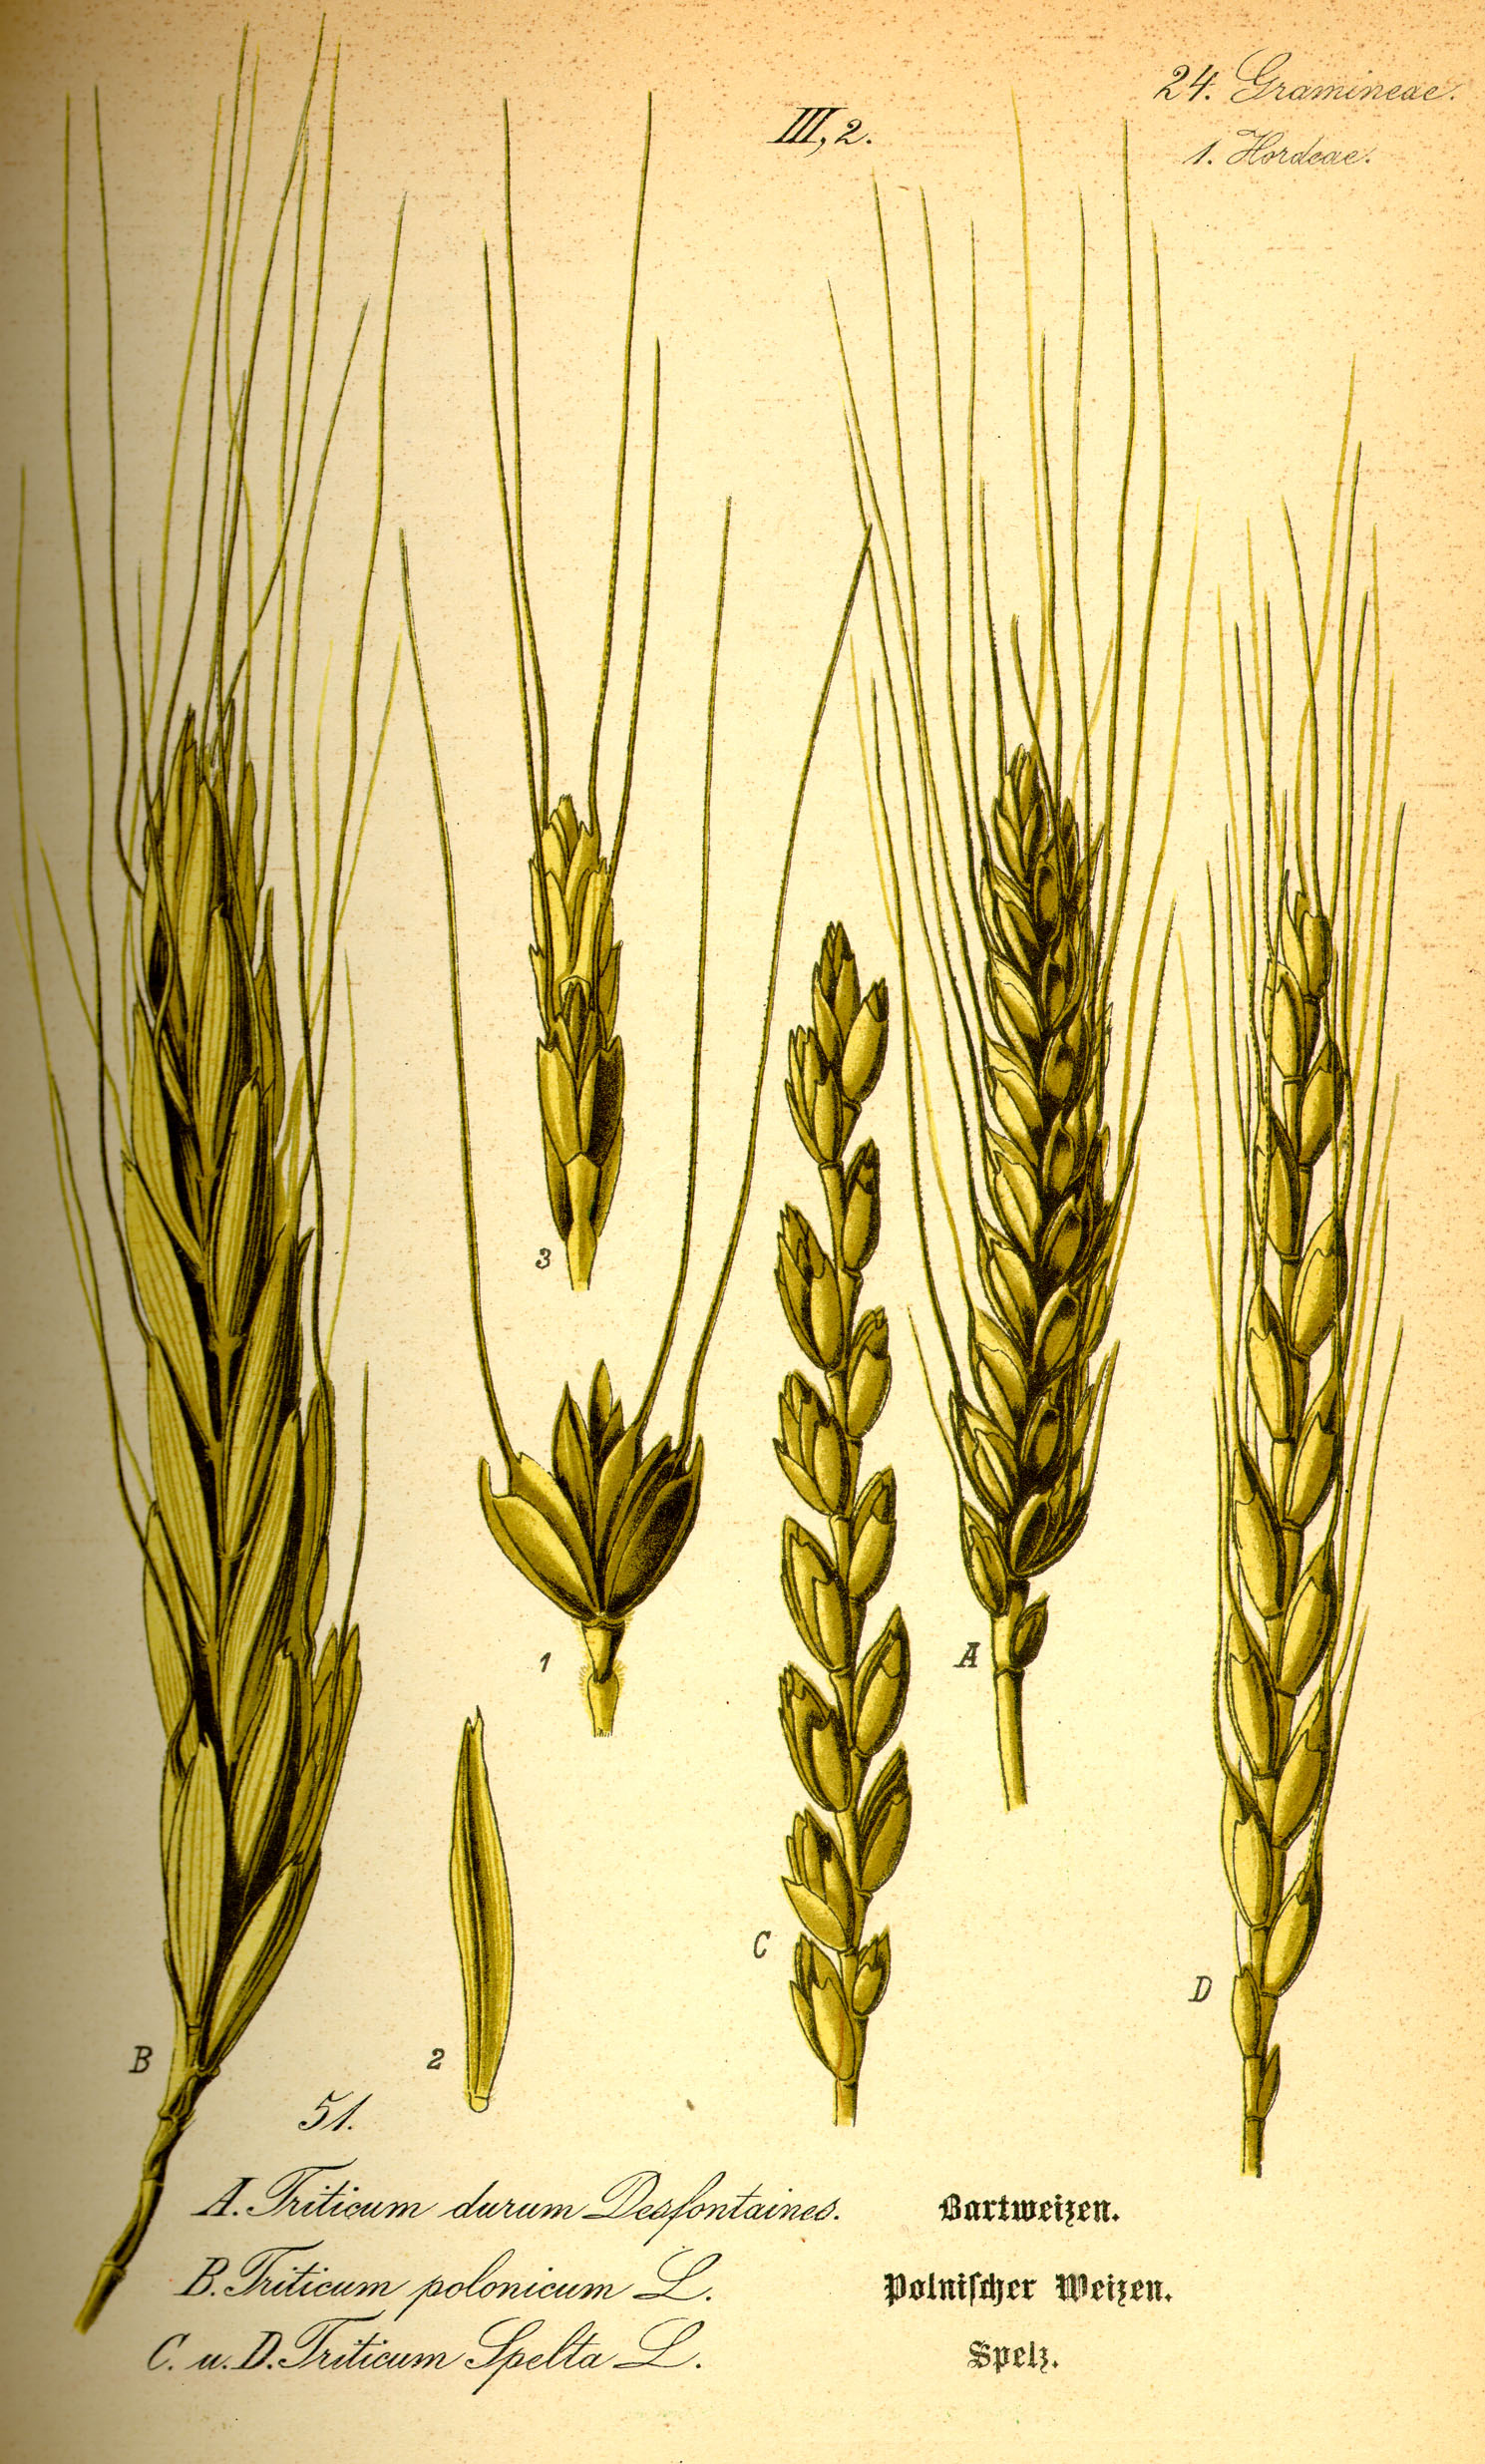 30 Liter Emmer File Illustration Triticum Spelta0 Jpg Wikimedia Commons